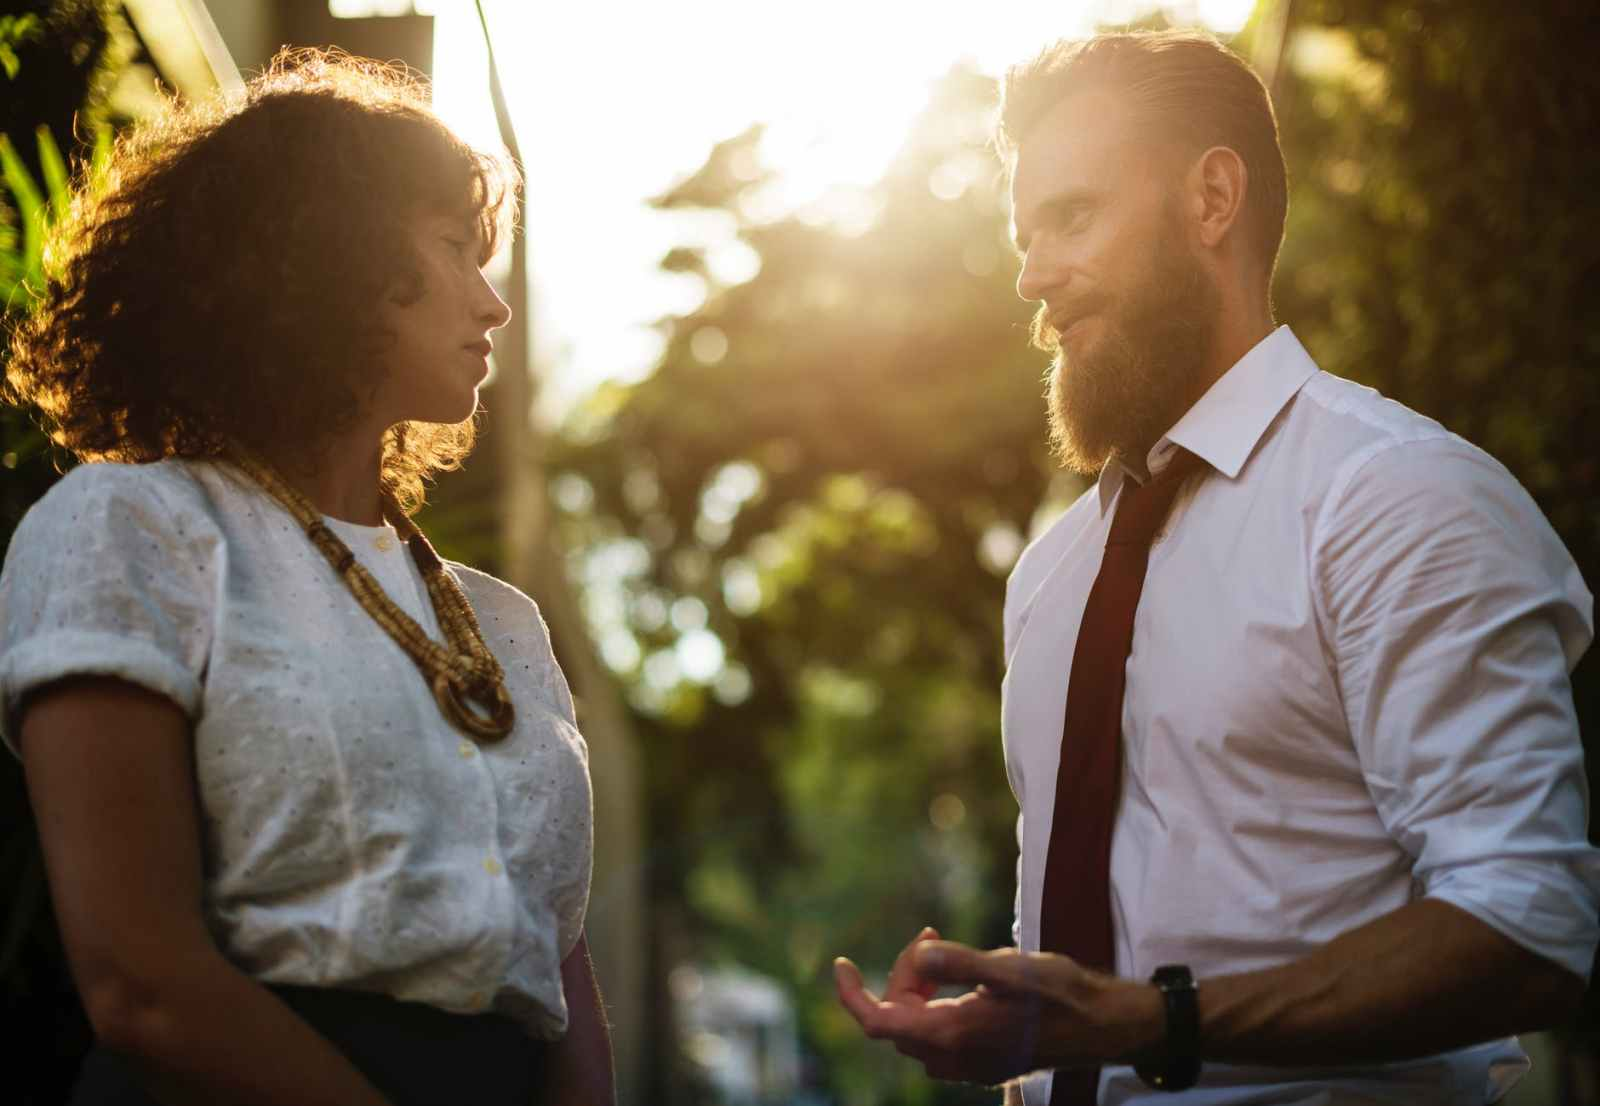 Five Ways to Be More Engaging in Conversation and Relationships